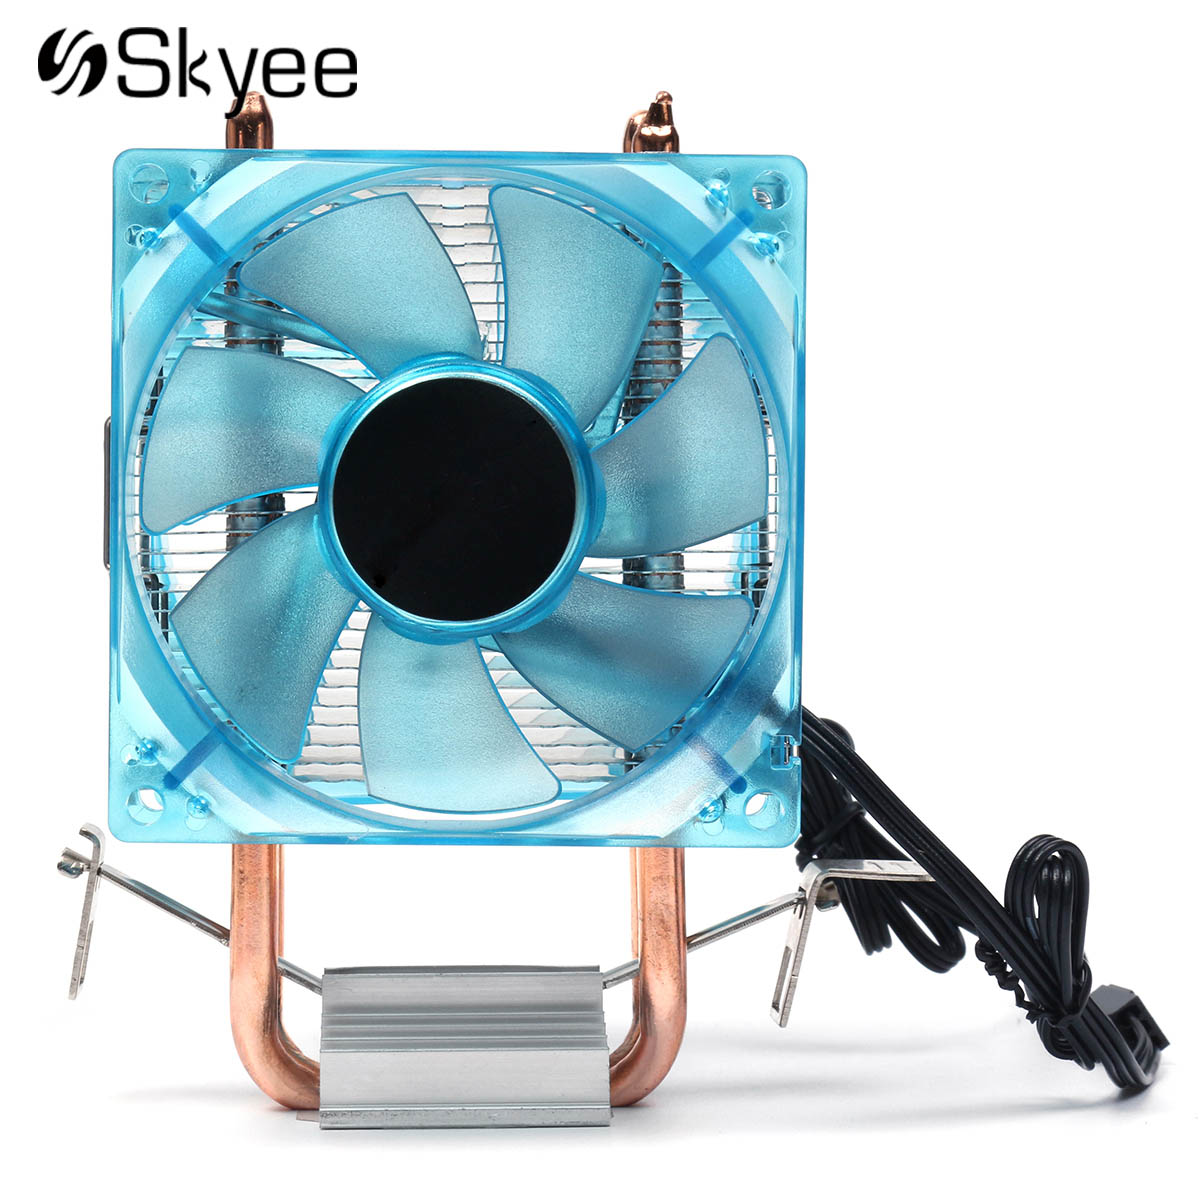 90mm Dual Copper Pipe LED CPU Cooling Fan 3pin Aluminum Heatsink Cooler Cooling Fan for AMD FM1 AM2 + AM3 +Intel 775 1155 1156 quiet cooled fan core led cpu cooler cooling fan cooler heatsink for intel socket lga1156 1155 775 amd am3 high quality